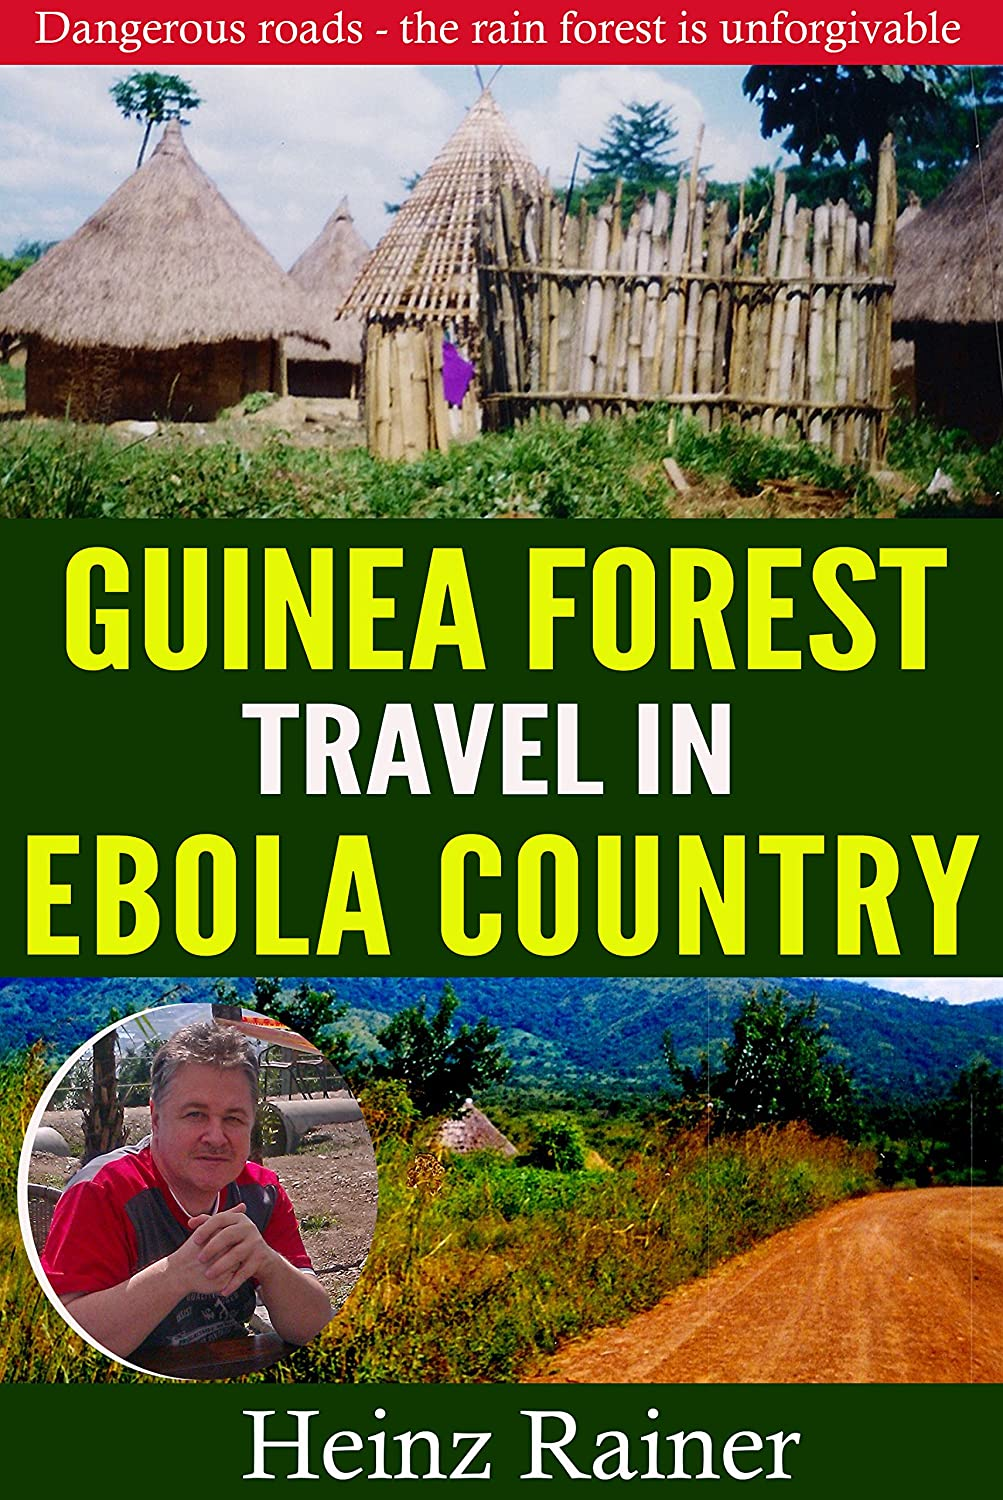 Travel in Ebola country: Dangerous roads - the rain forest is unforgivable